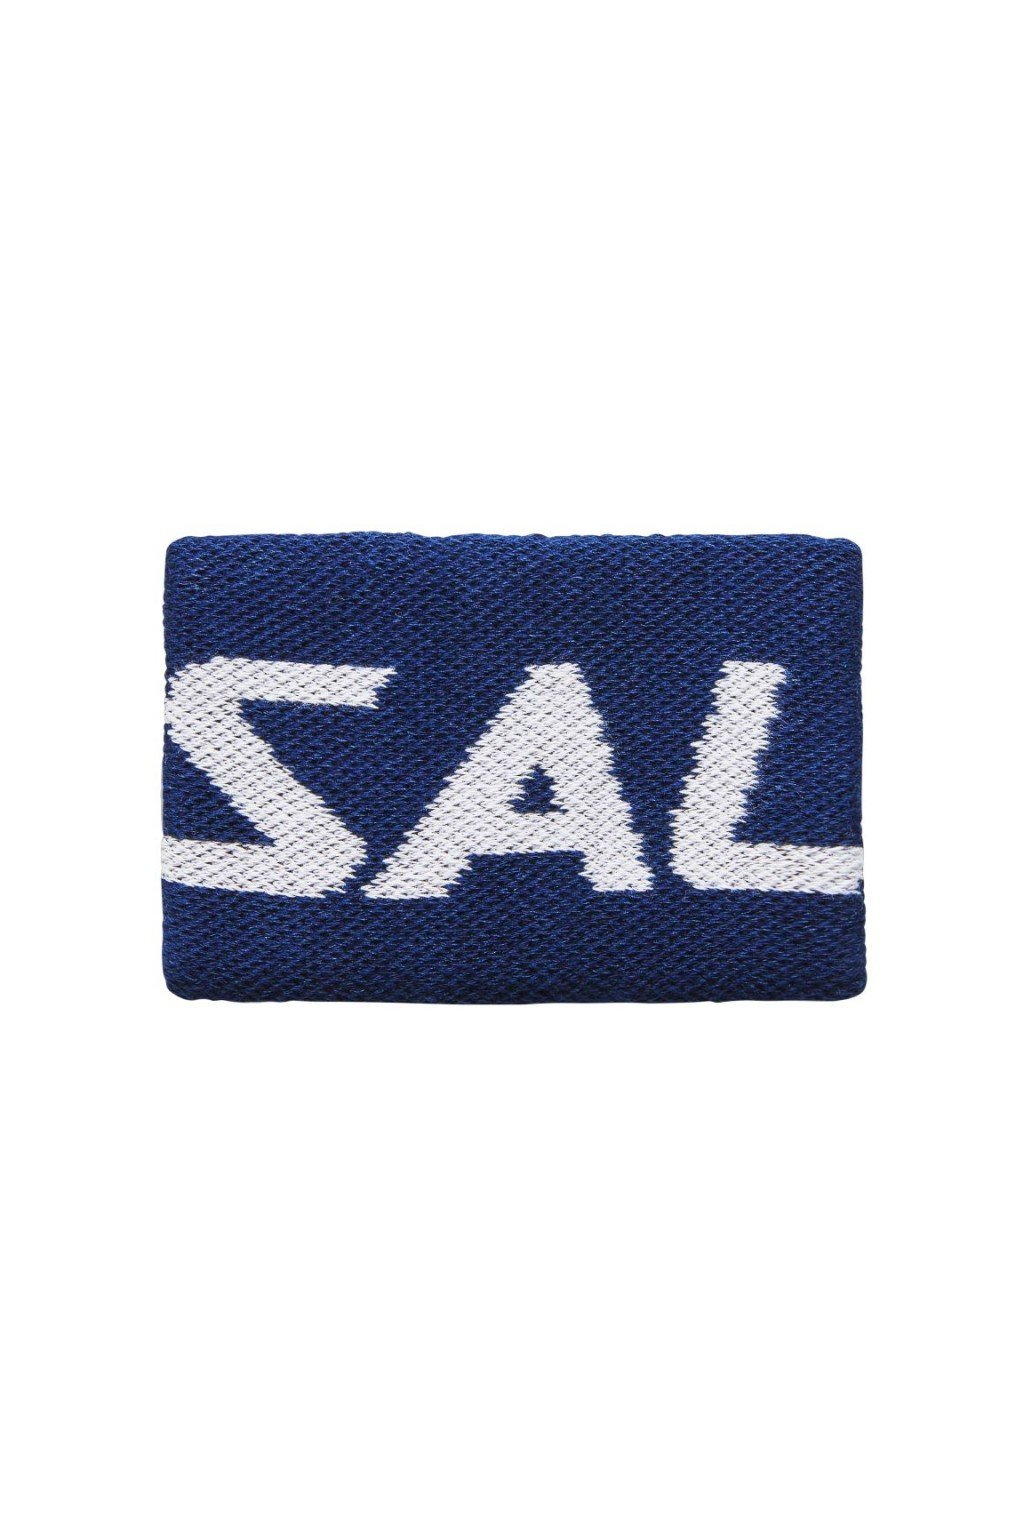 salming wristband mid navy white